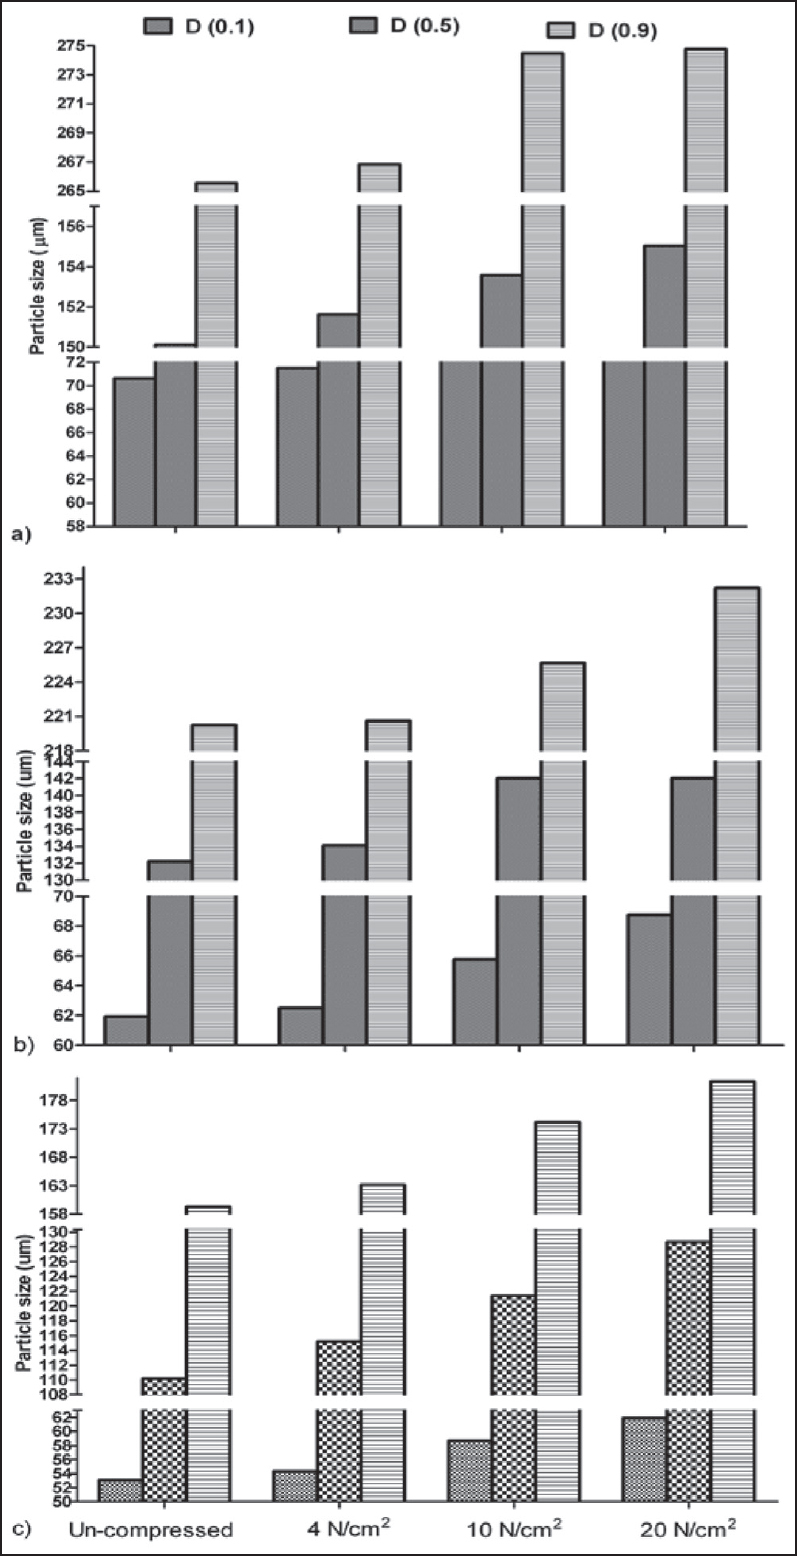 Particle size distribution (D[0.1], D[0.5], and D[0.9]) of lactose for the un-compressed and compressed at 4, 10 and 20 N/cm2 of (a) InhaLac 70, (b) InhaLac 120 and (c) InhaLac 230